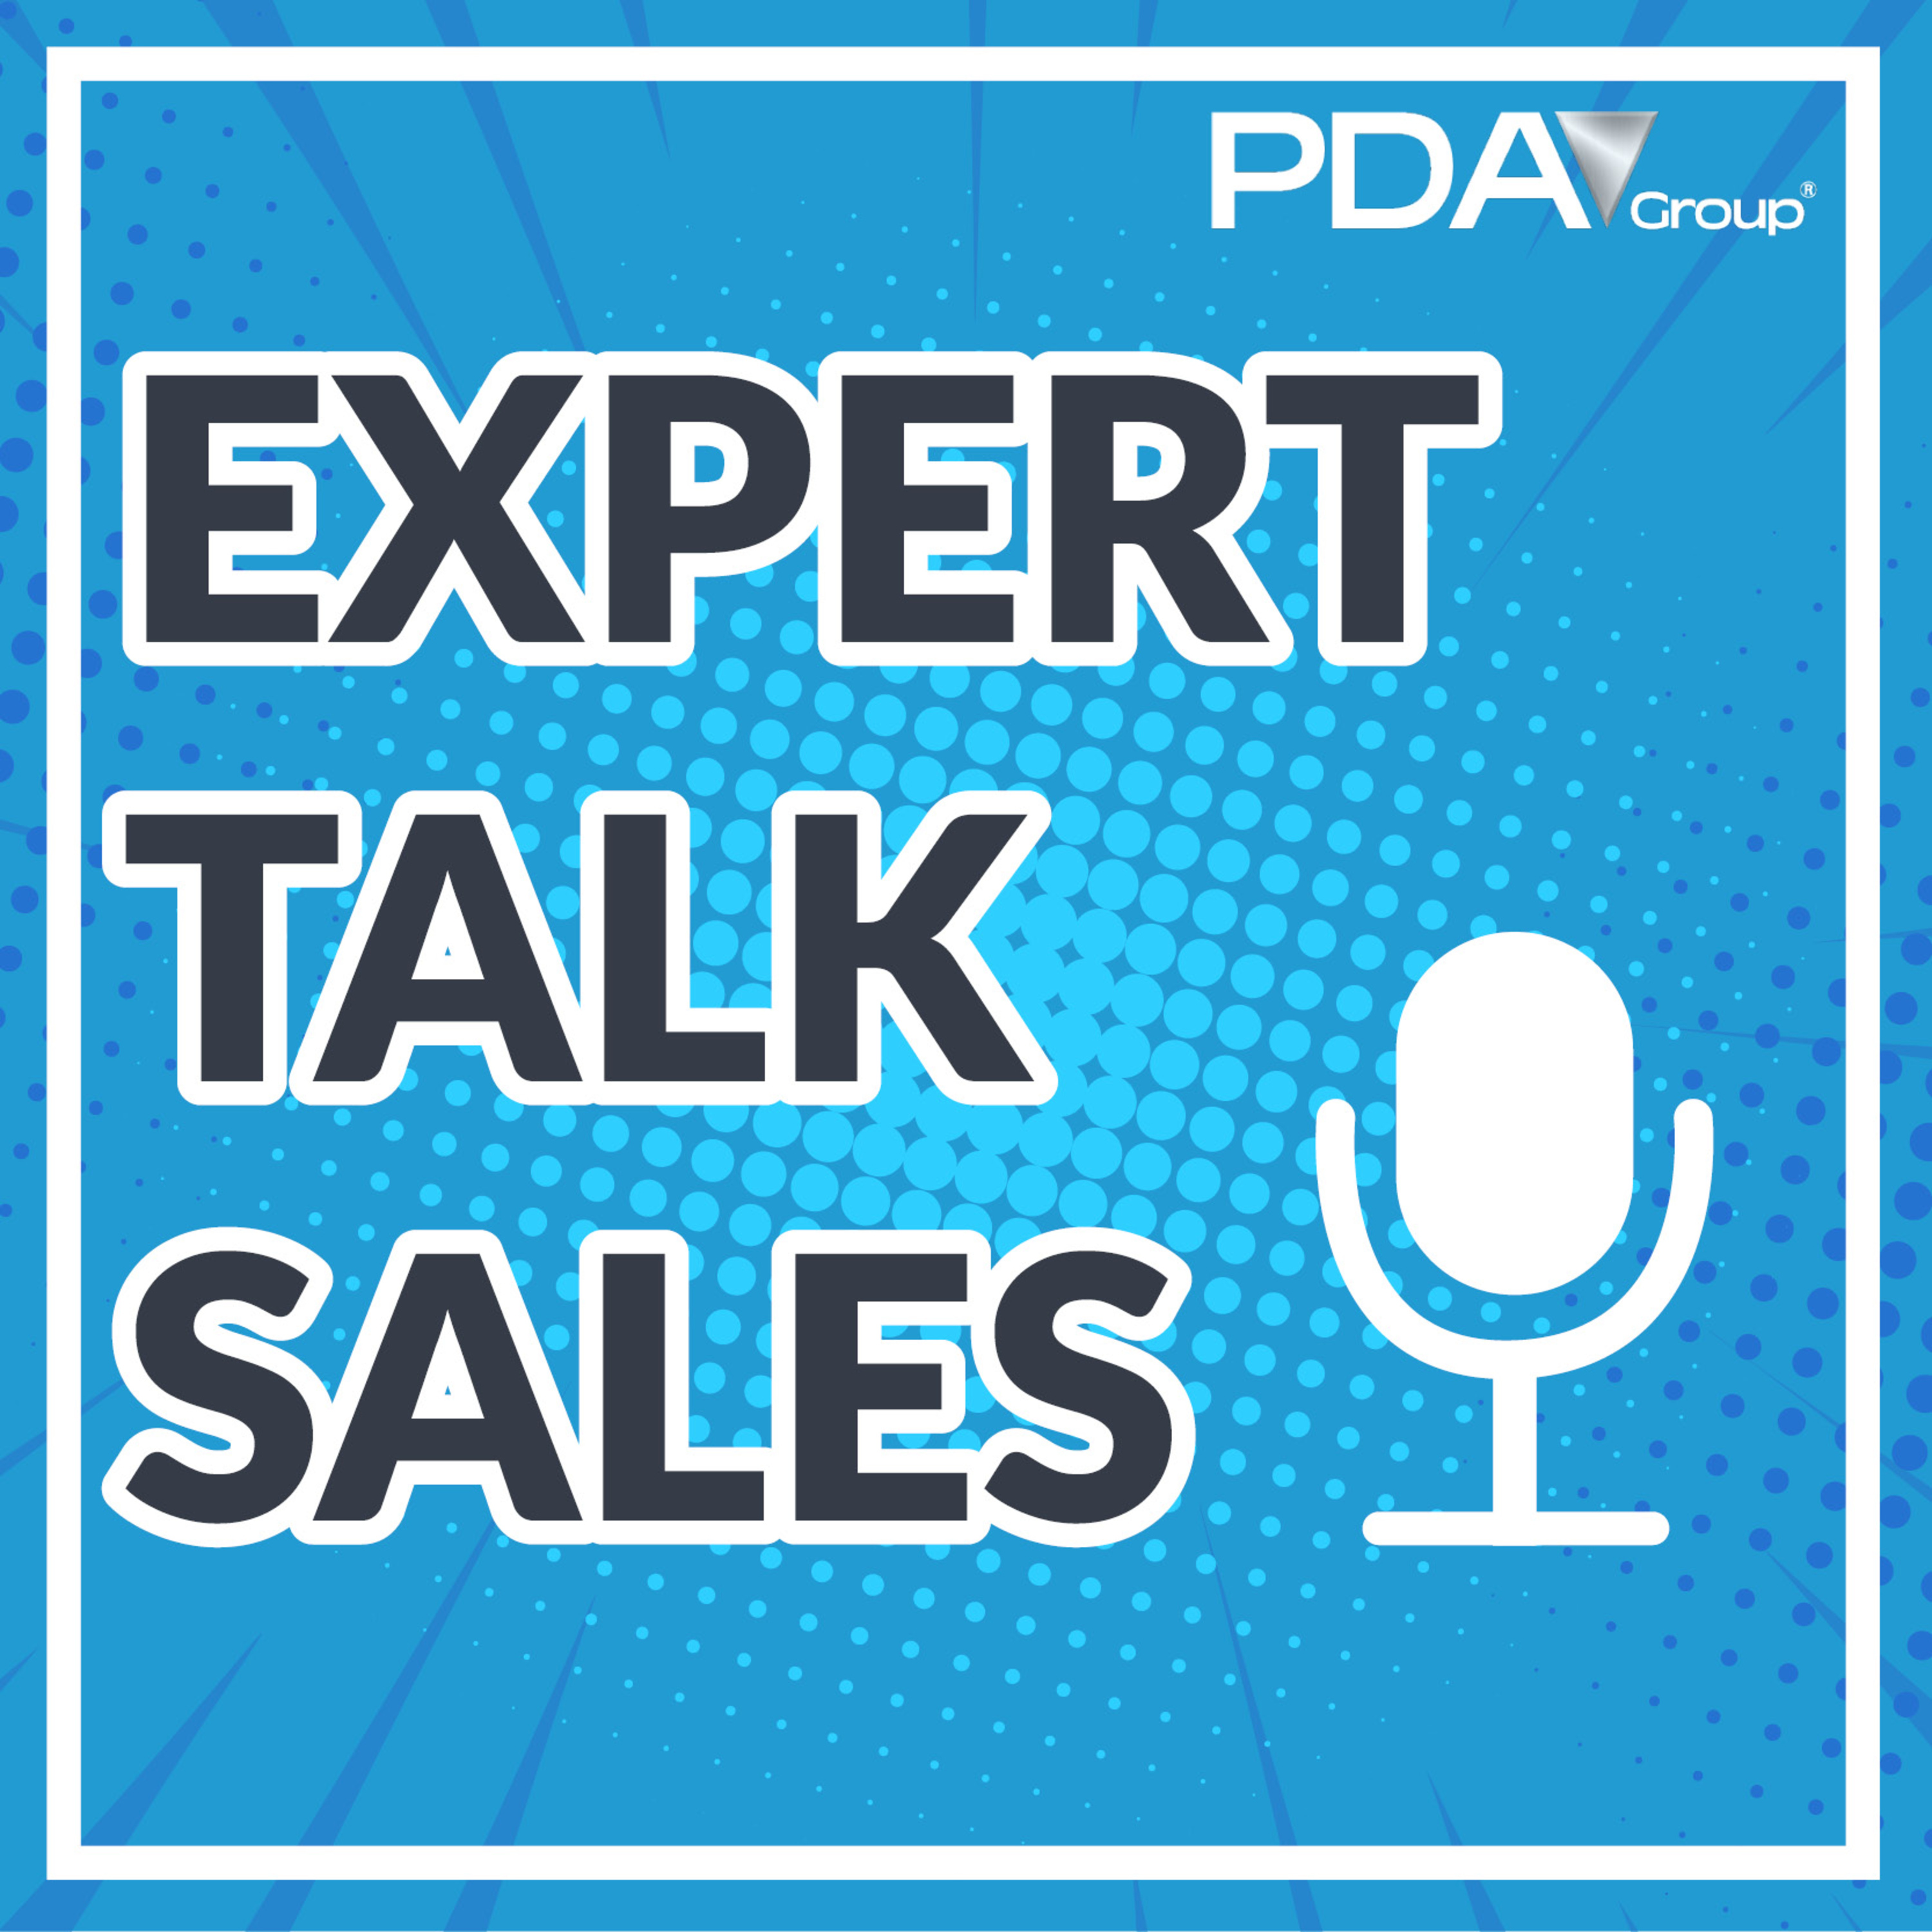 Expert Talk Sales: Digitales Sales Kick-Off Meeting mit Dagmar Eisenbach & Benjamin Strathmann